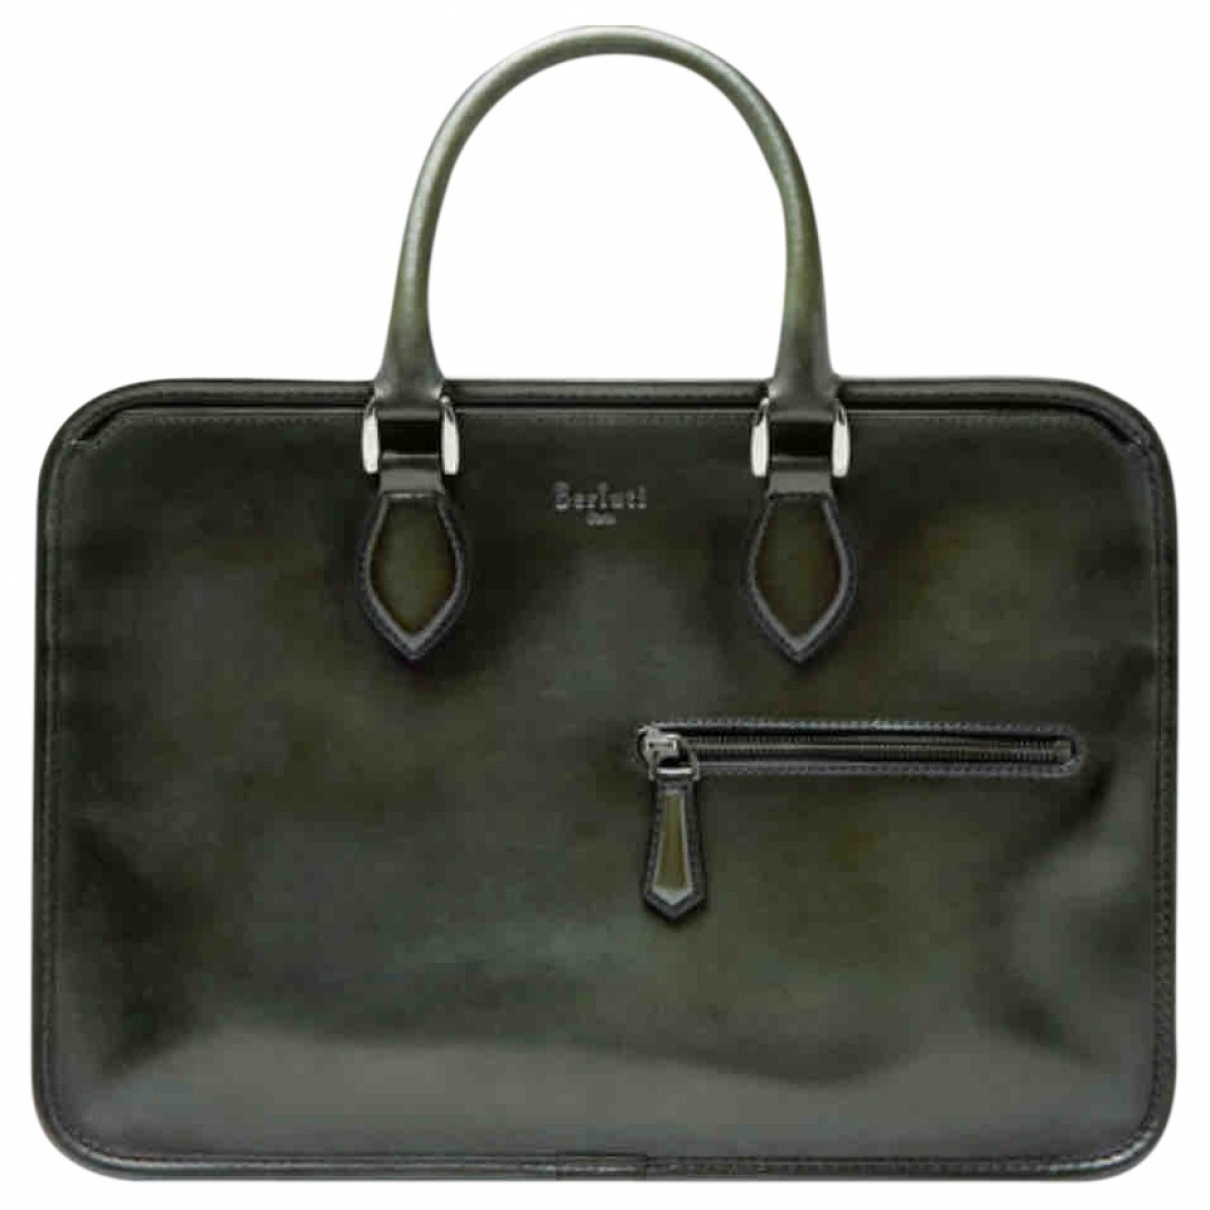 Berluti \N Green Leather bag for Men \N